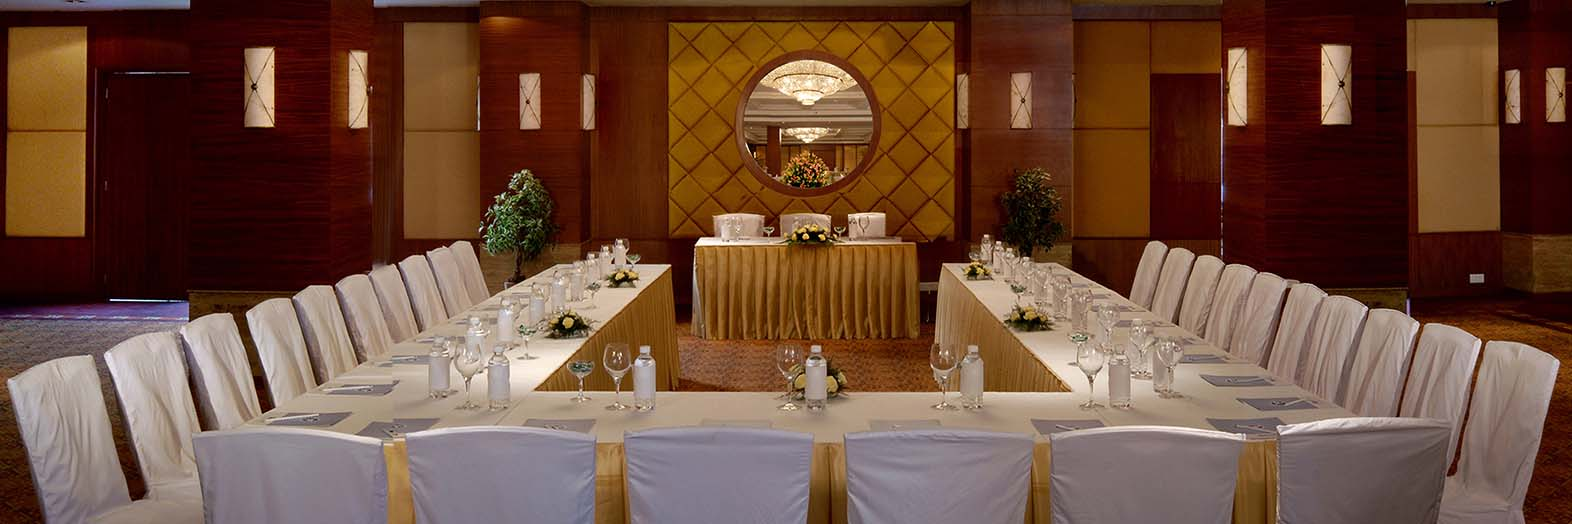 Hotels in Mumbai – Navi Mumbai Meeting Venues